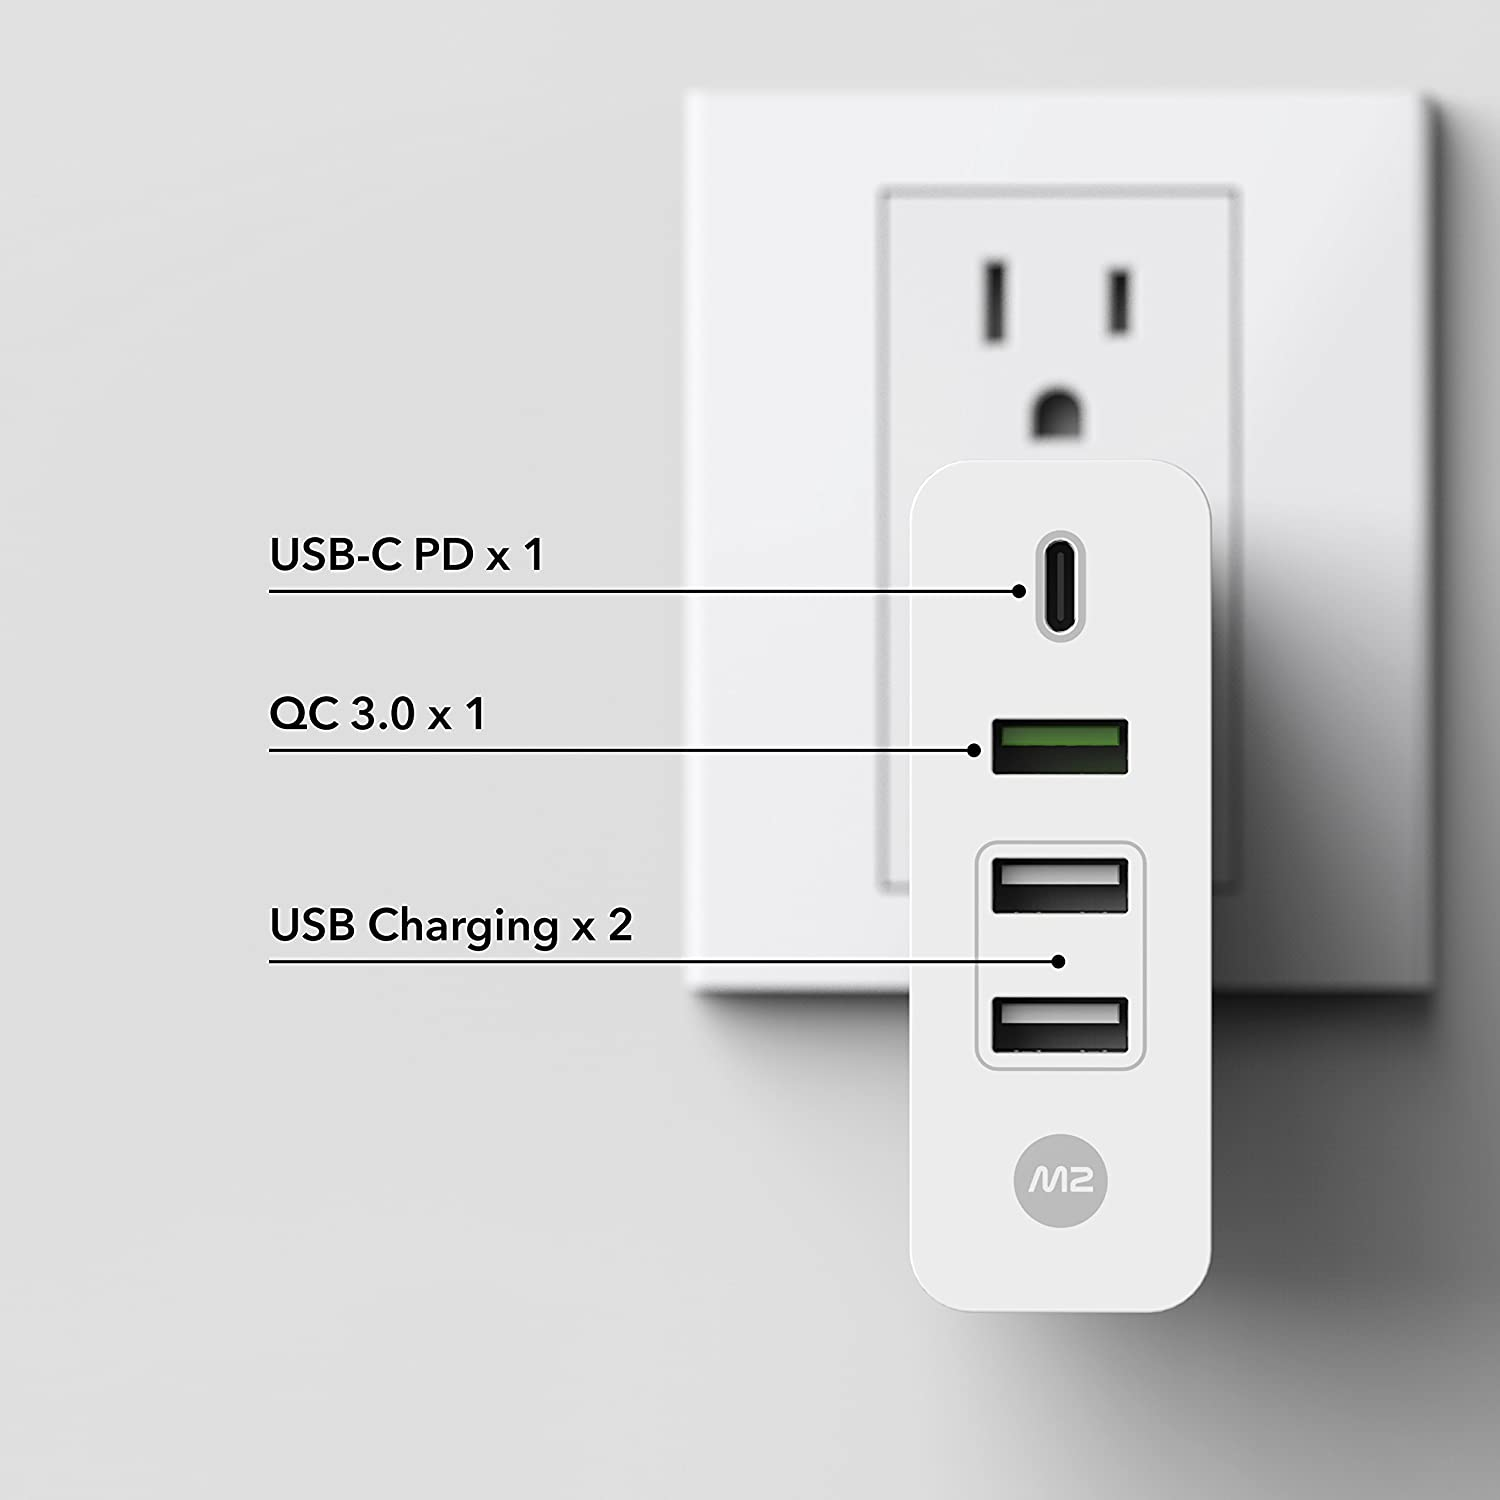 Monitormate M2 Cube Usb C Pd 1 To 4 Expansion For Usbc Wiring Diagram Macbook Pros Charger61w 87w Computers Accessories